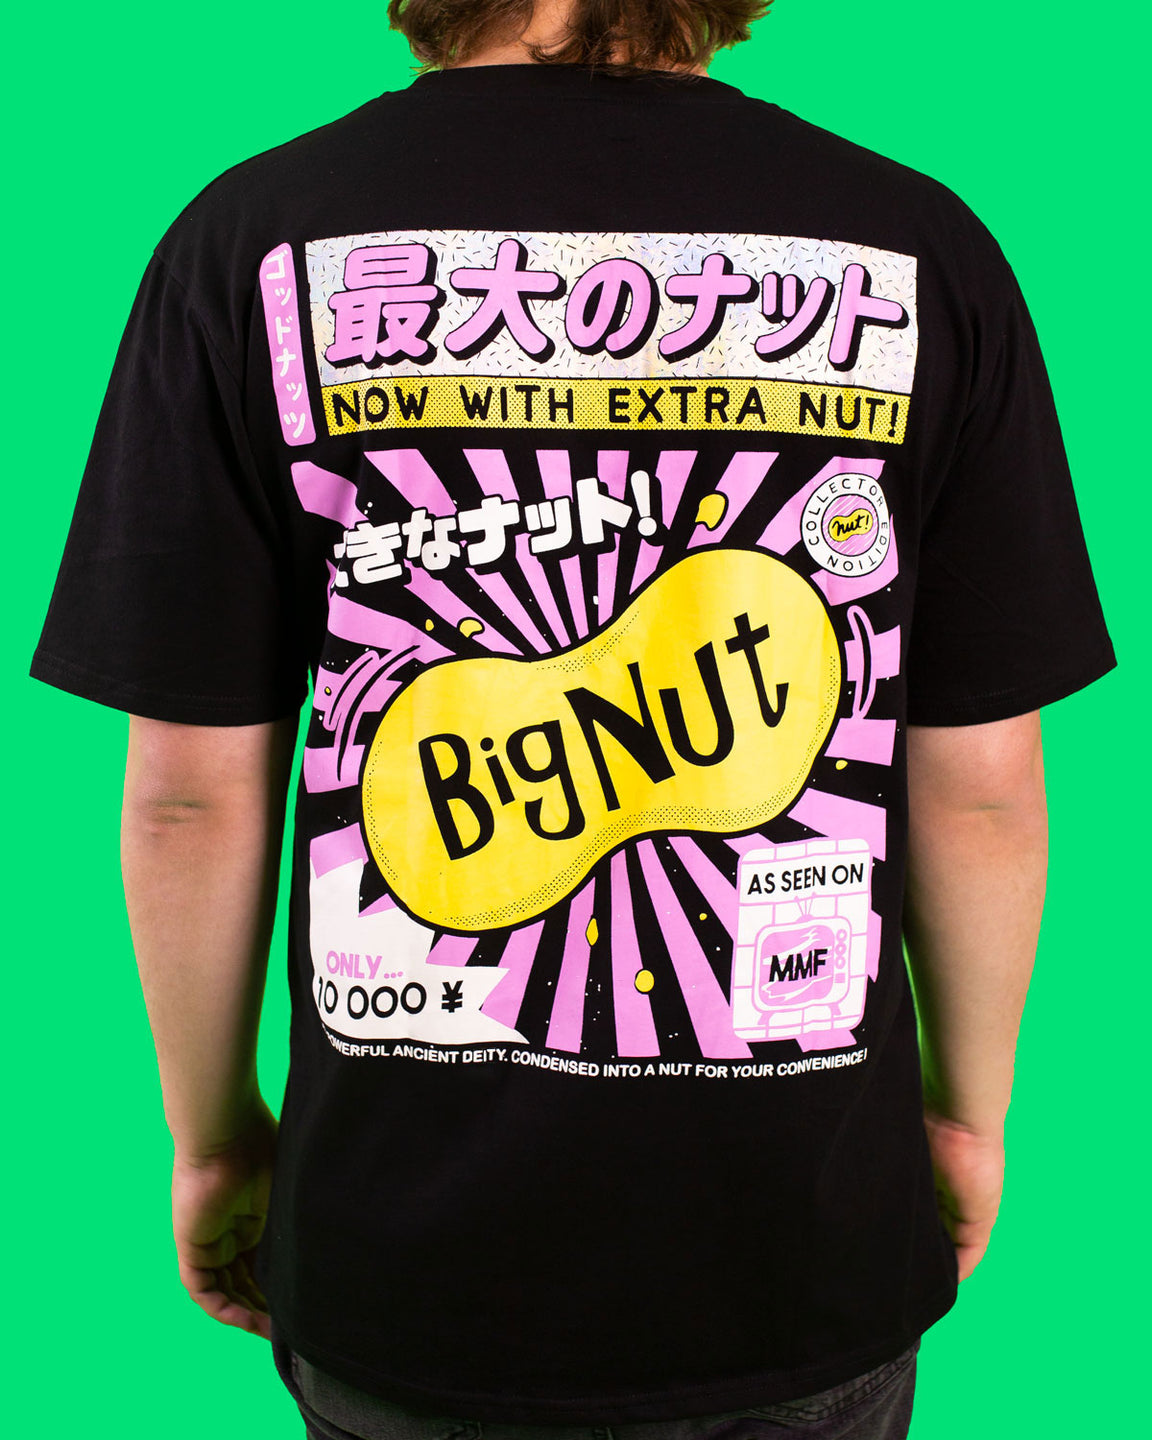 The Big Nut Bundle